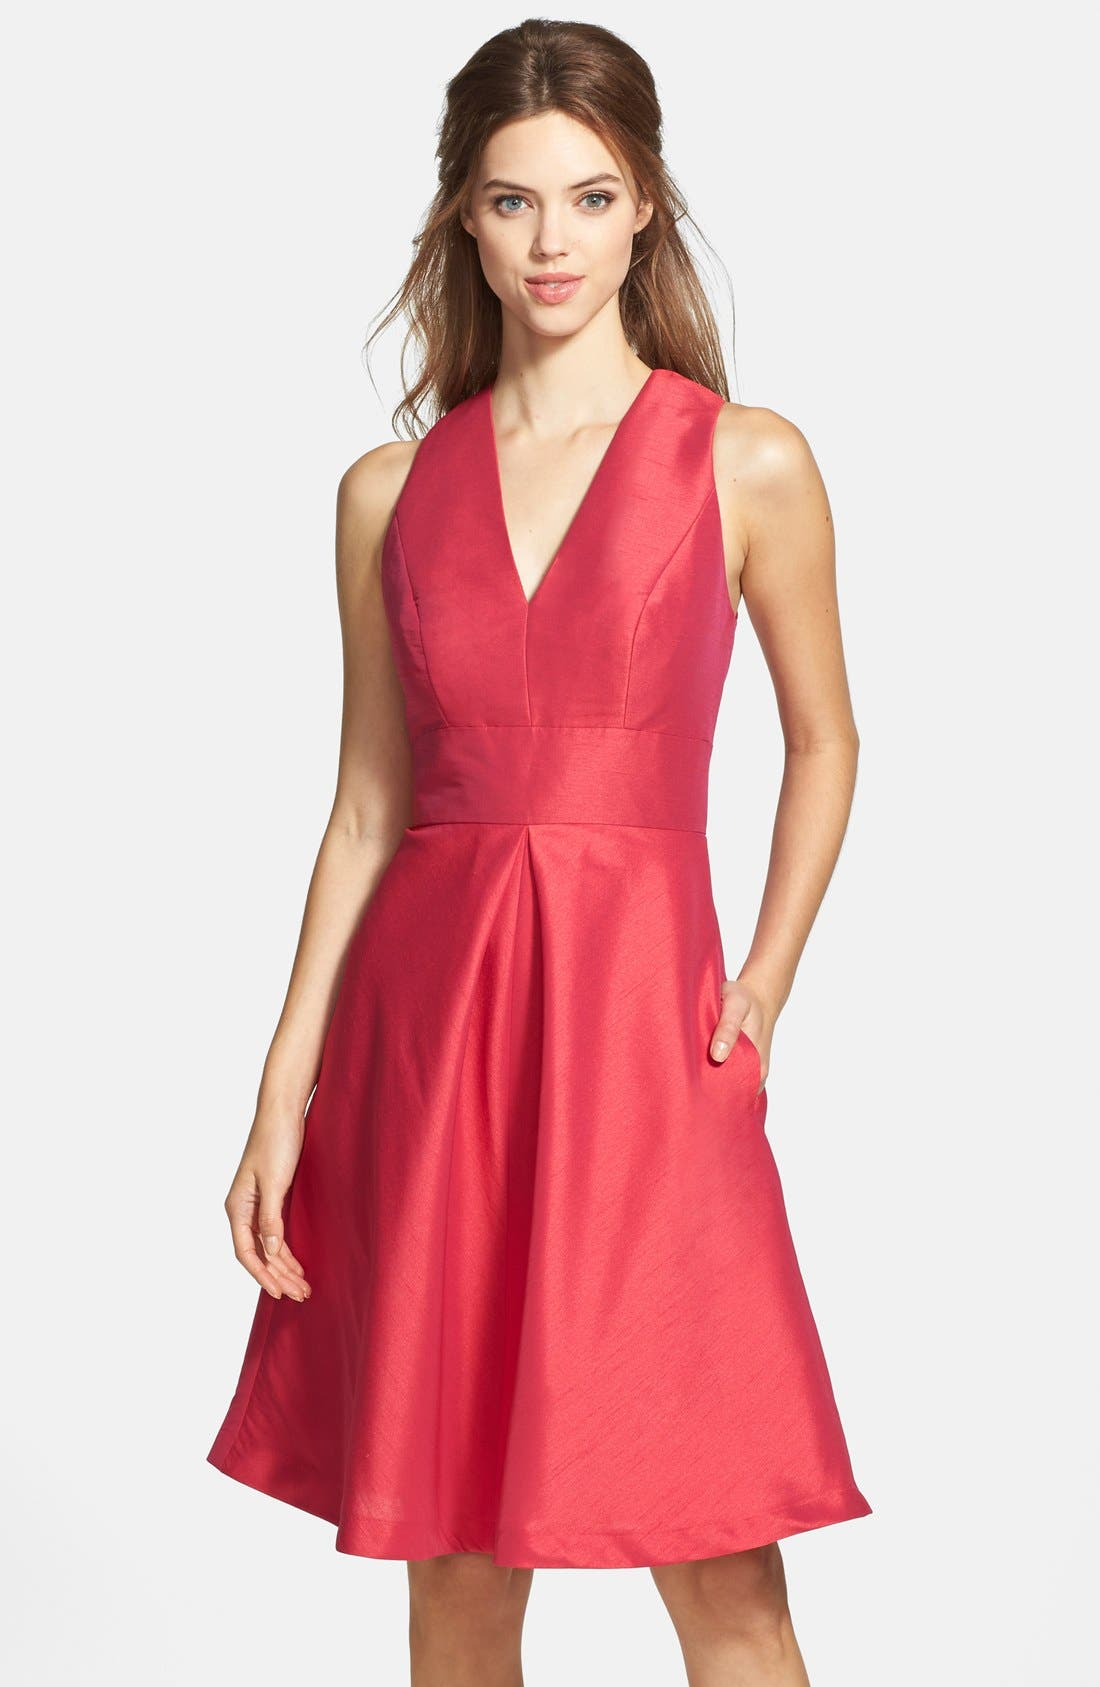 Womens short bridesmaid dresses nordstrom ombrellifo Images